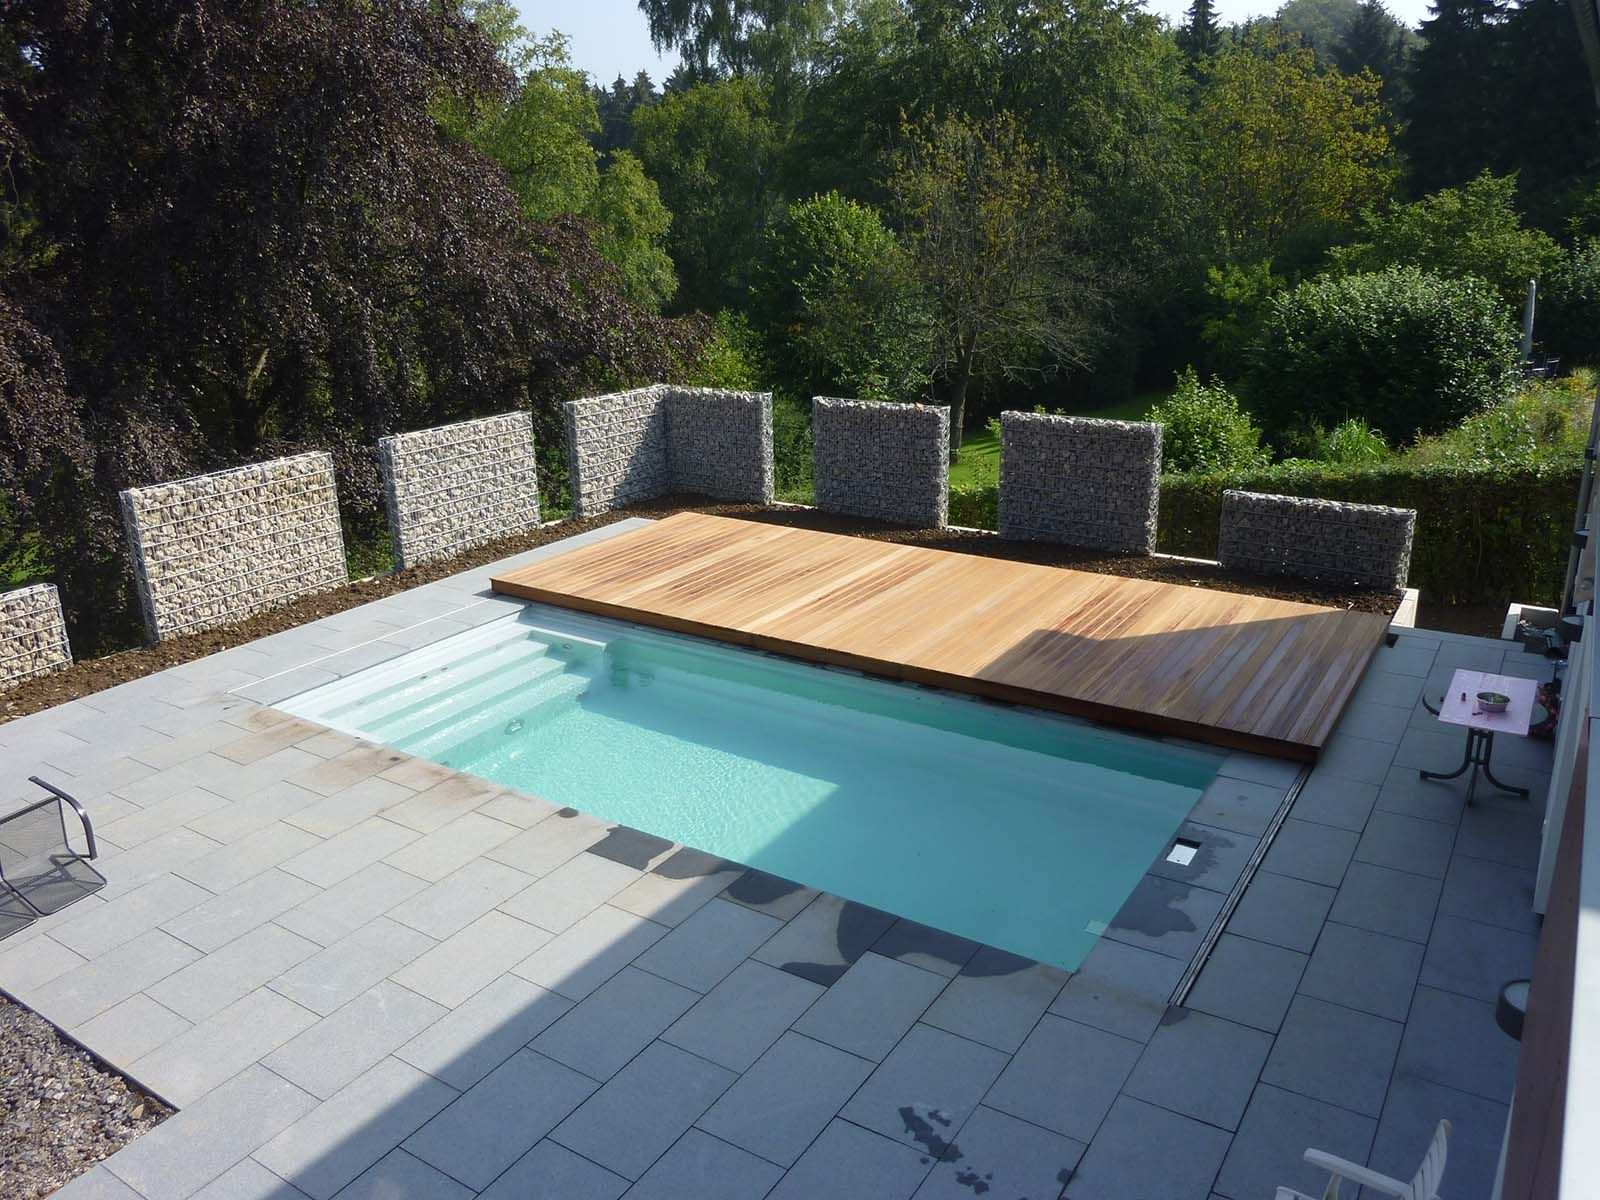 Sliding Deck To Cover Pool When Not In Use!